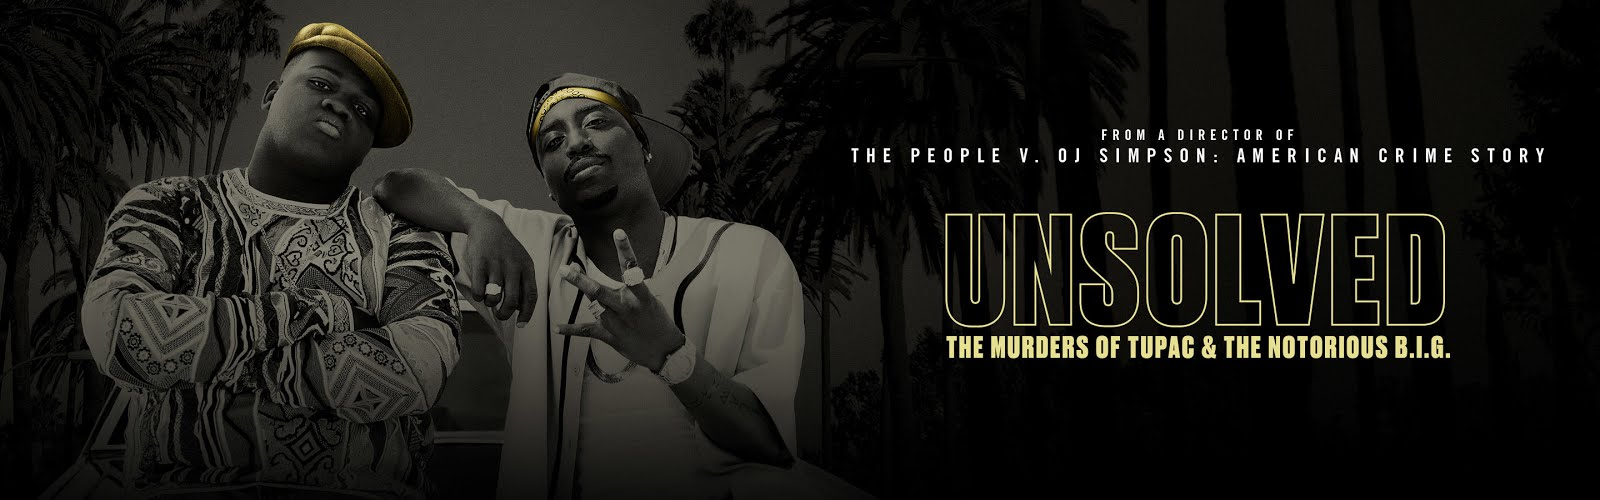 Unsolved: The Murders of Tupac and the Notorious B.I.G. USA Network